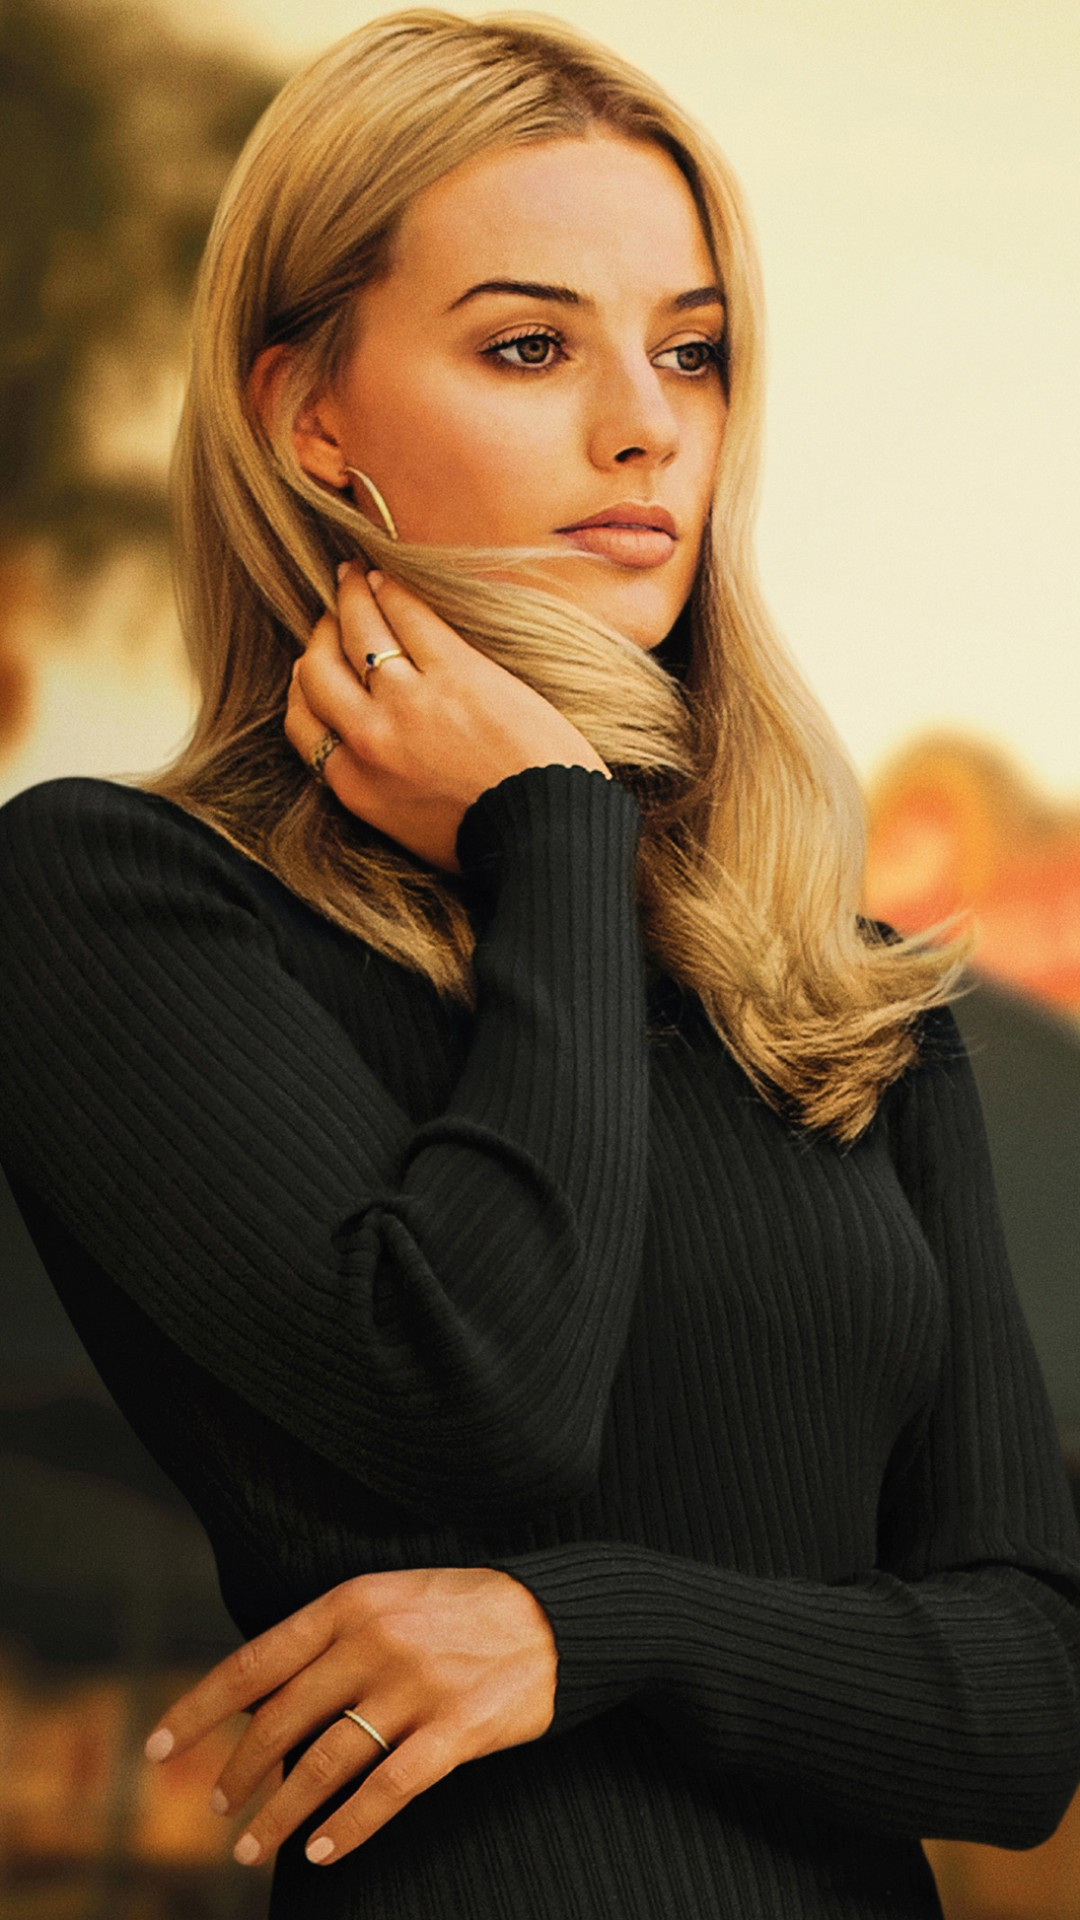 Wallpaper Once Upon A Time In Hollywood Margot Robbie 4k